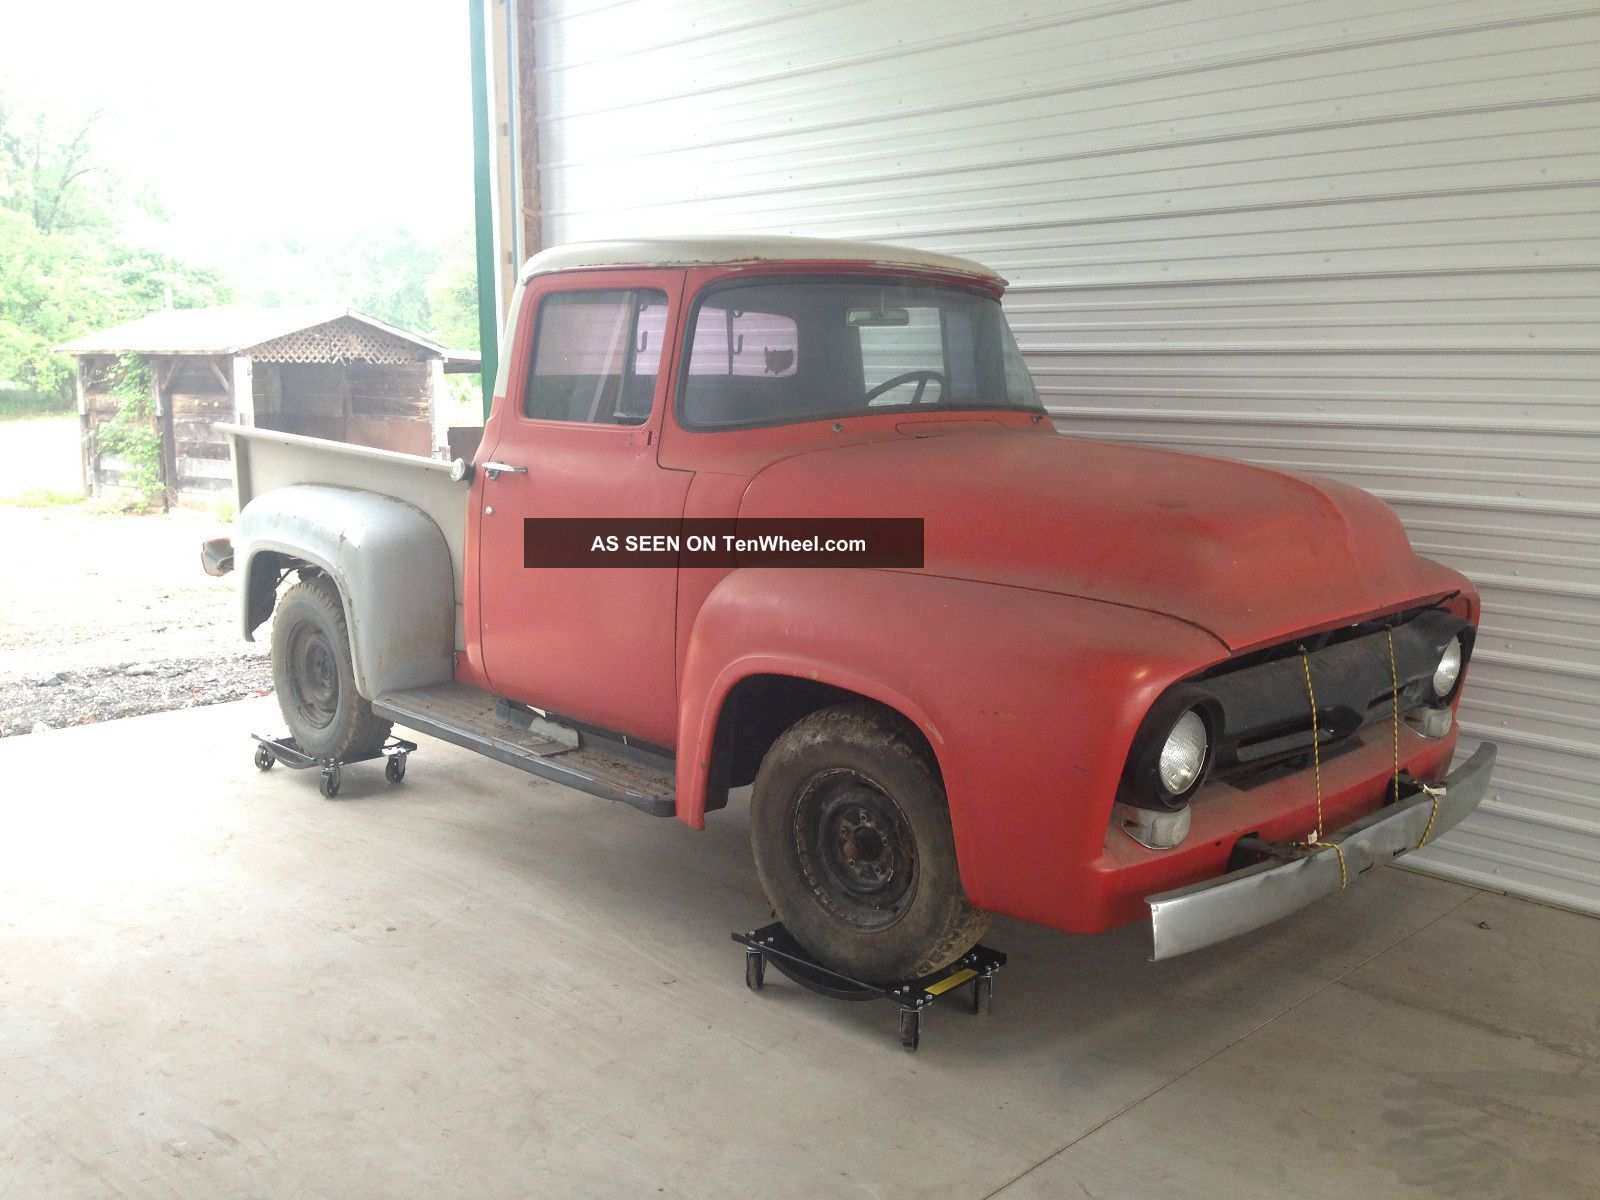 1956 Ford F100 Pickup Truck Very Little Rust Easy Restoration F-100 photo